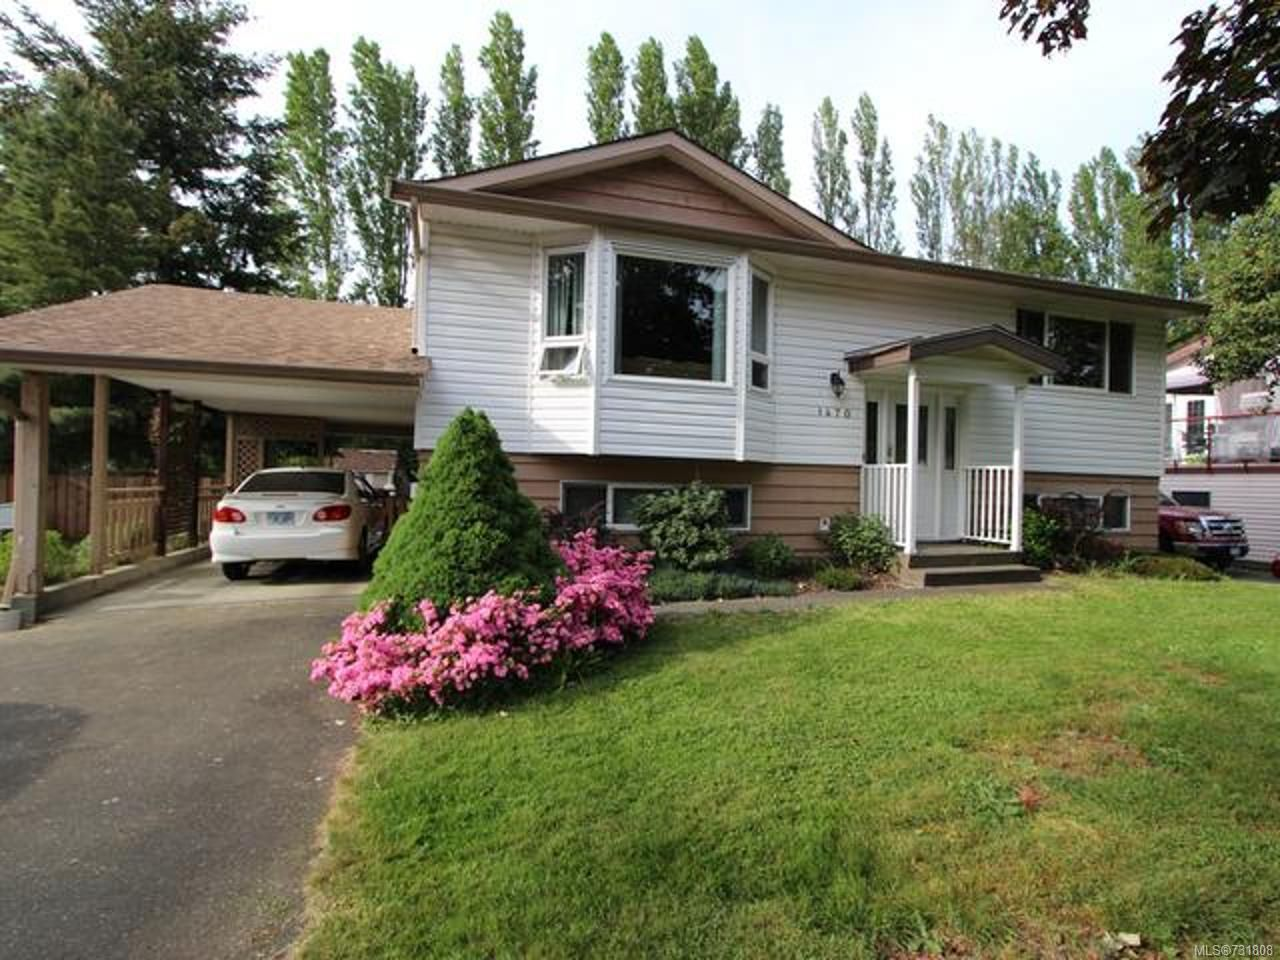 Main Photo: 1470 Dogwood Ave in COMOX: CV Comox (Town of) House for sale (Comox Valley)  : MLS®# 731808